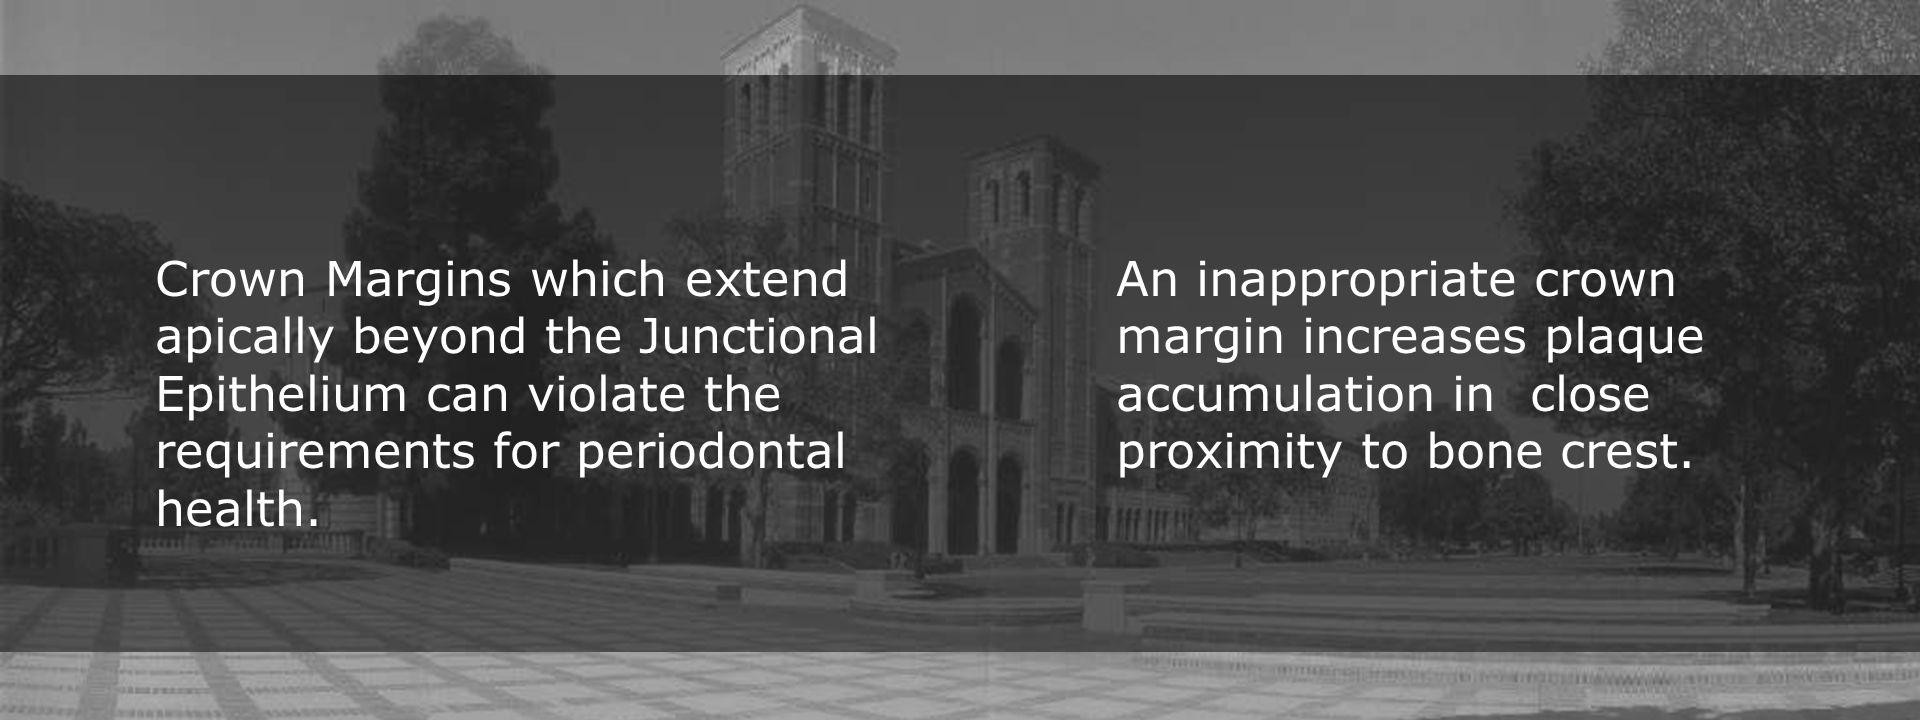 Crown Margins which extend apically beyond the Junctional Epithelium can violate the requirements for periodontal health.